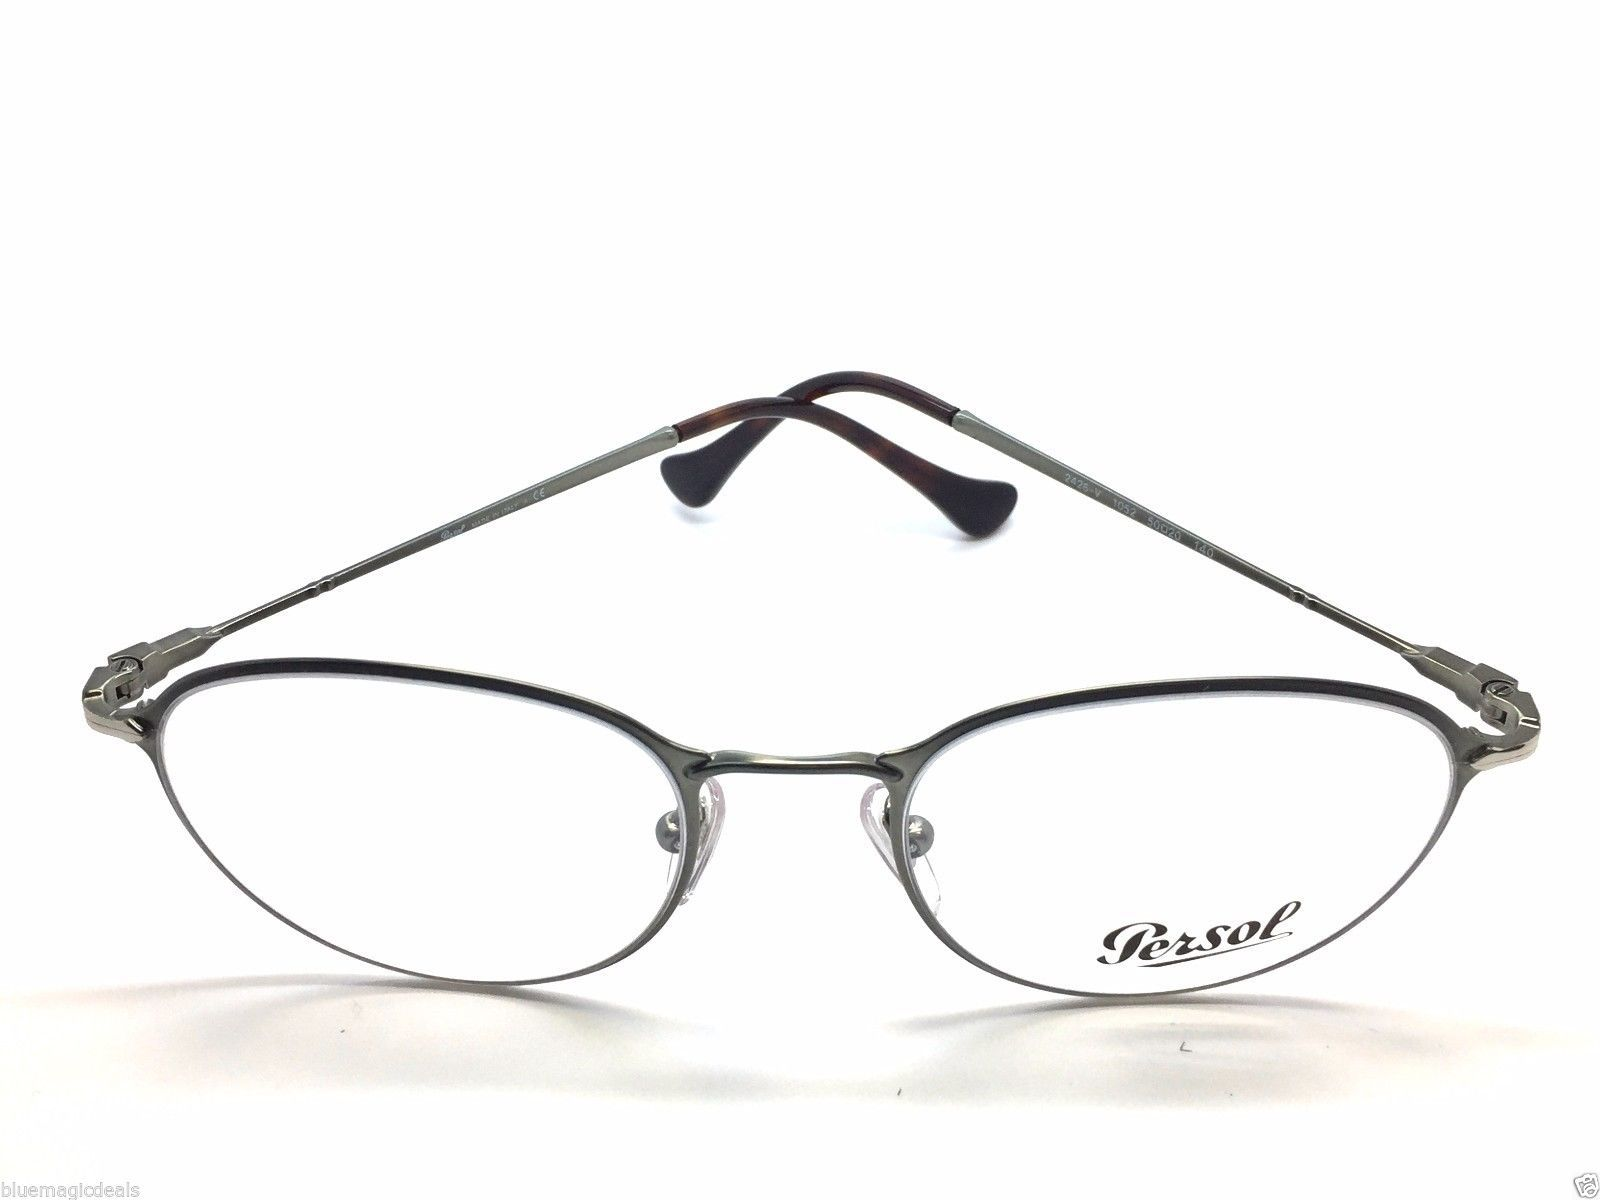 c58da2b334e65 Persol Rx Eyeglasses Frames 2426 V 1052 and 50 similar items